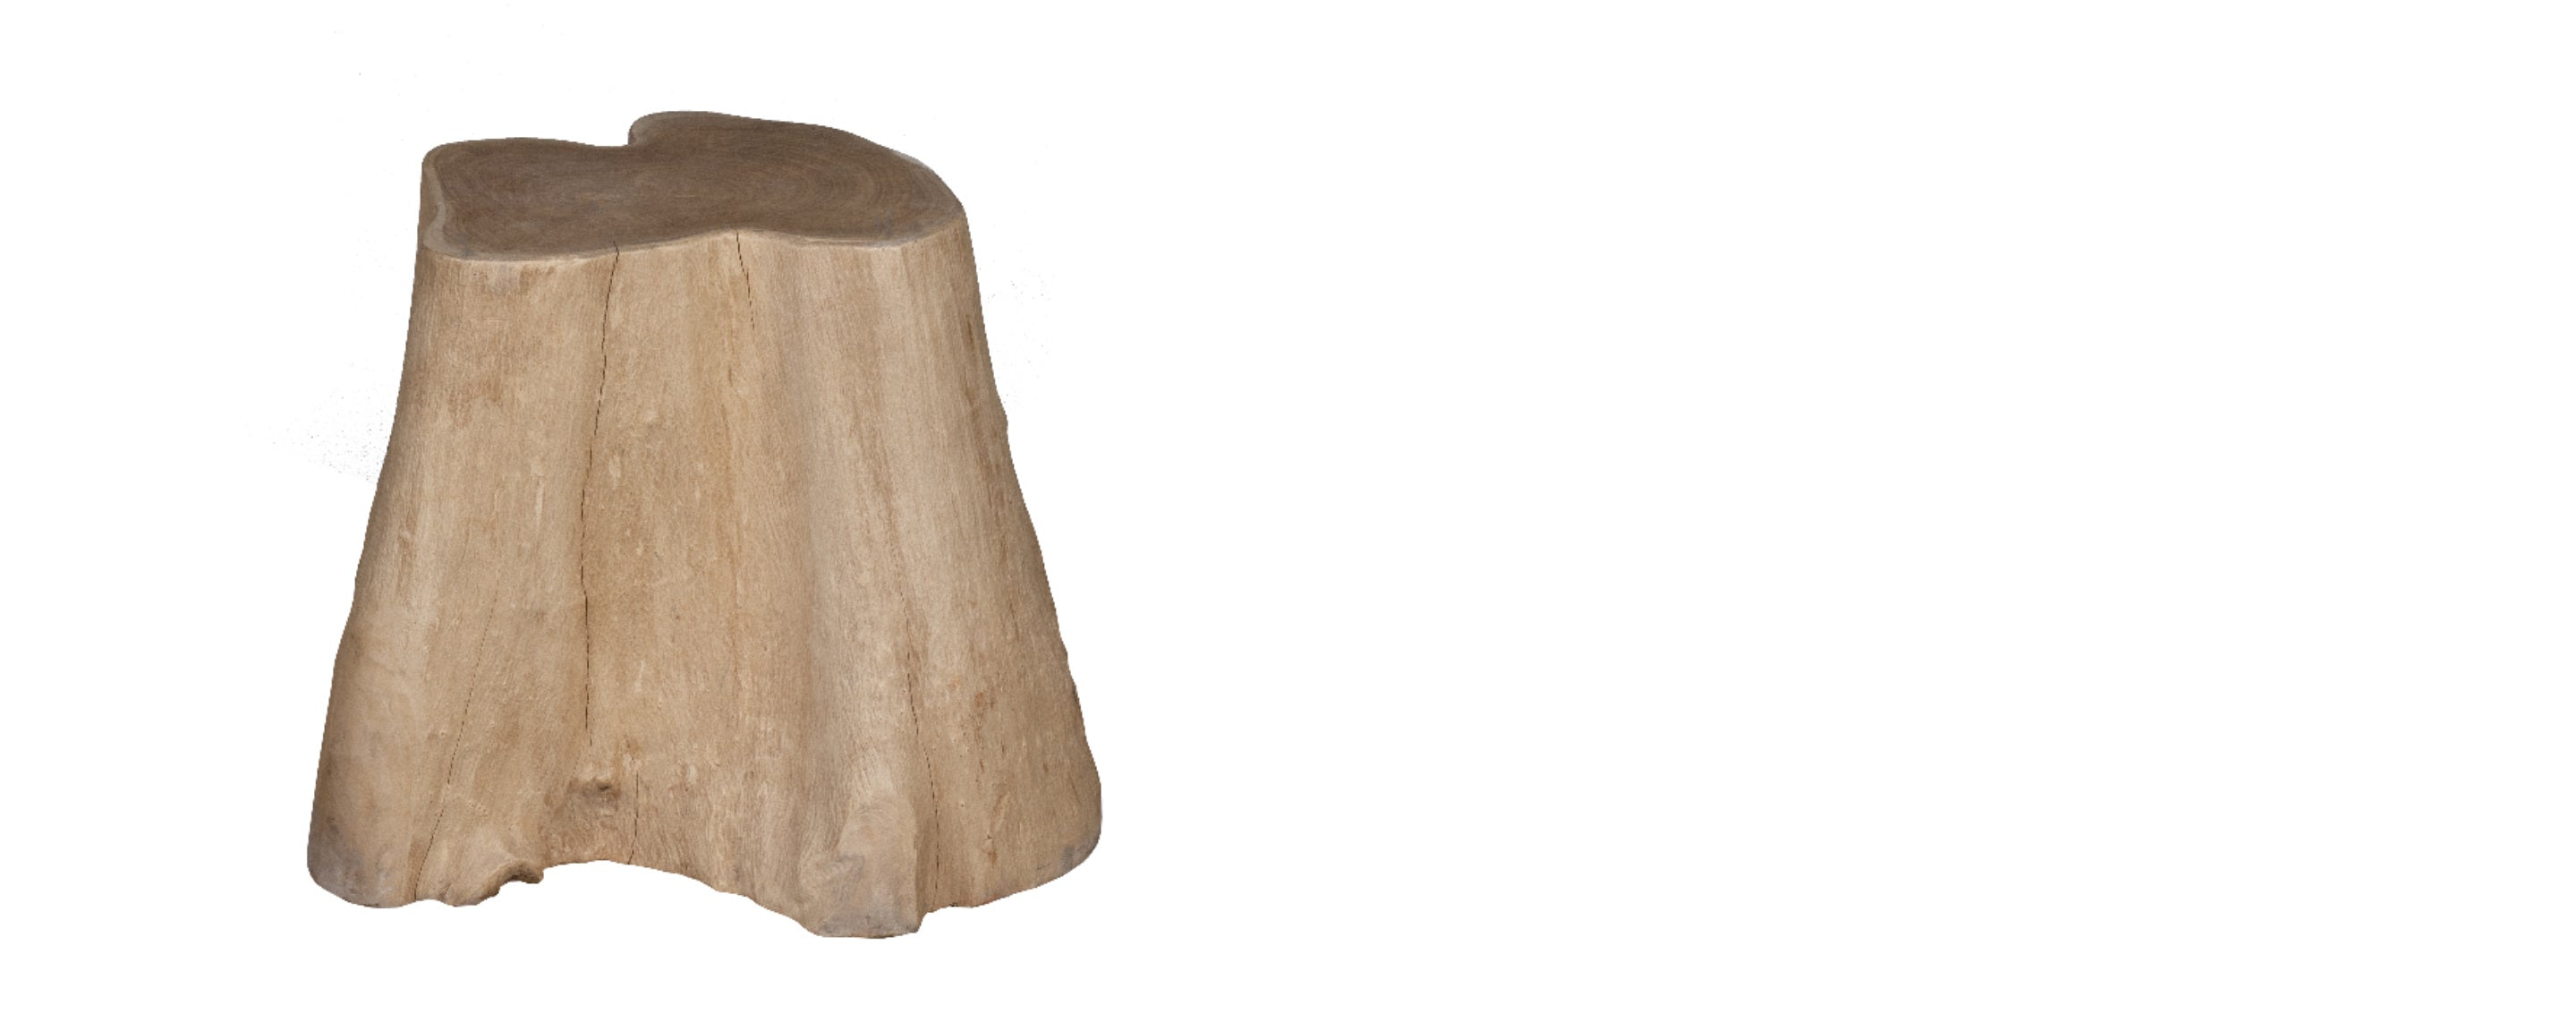 live edge root end table/stool